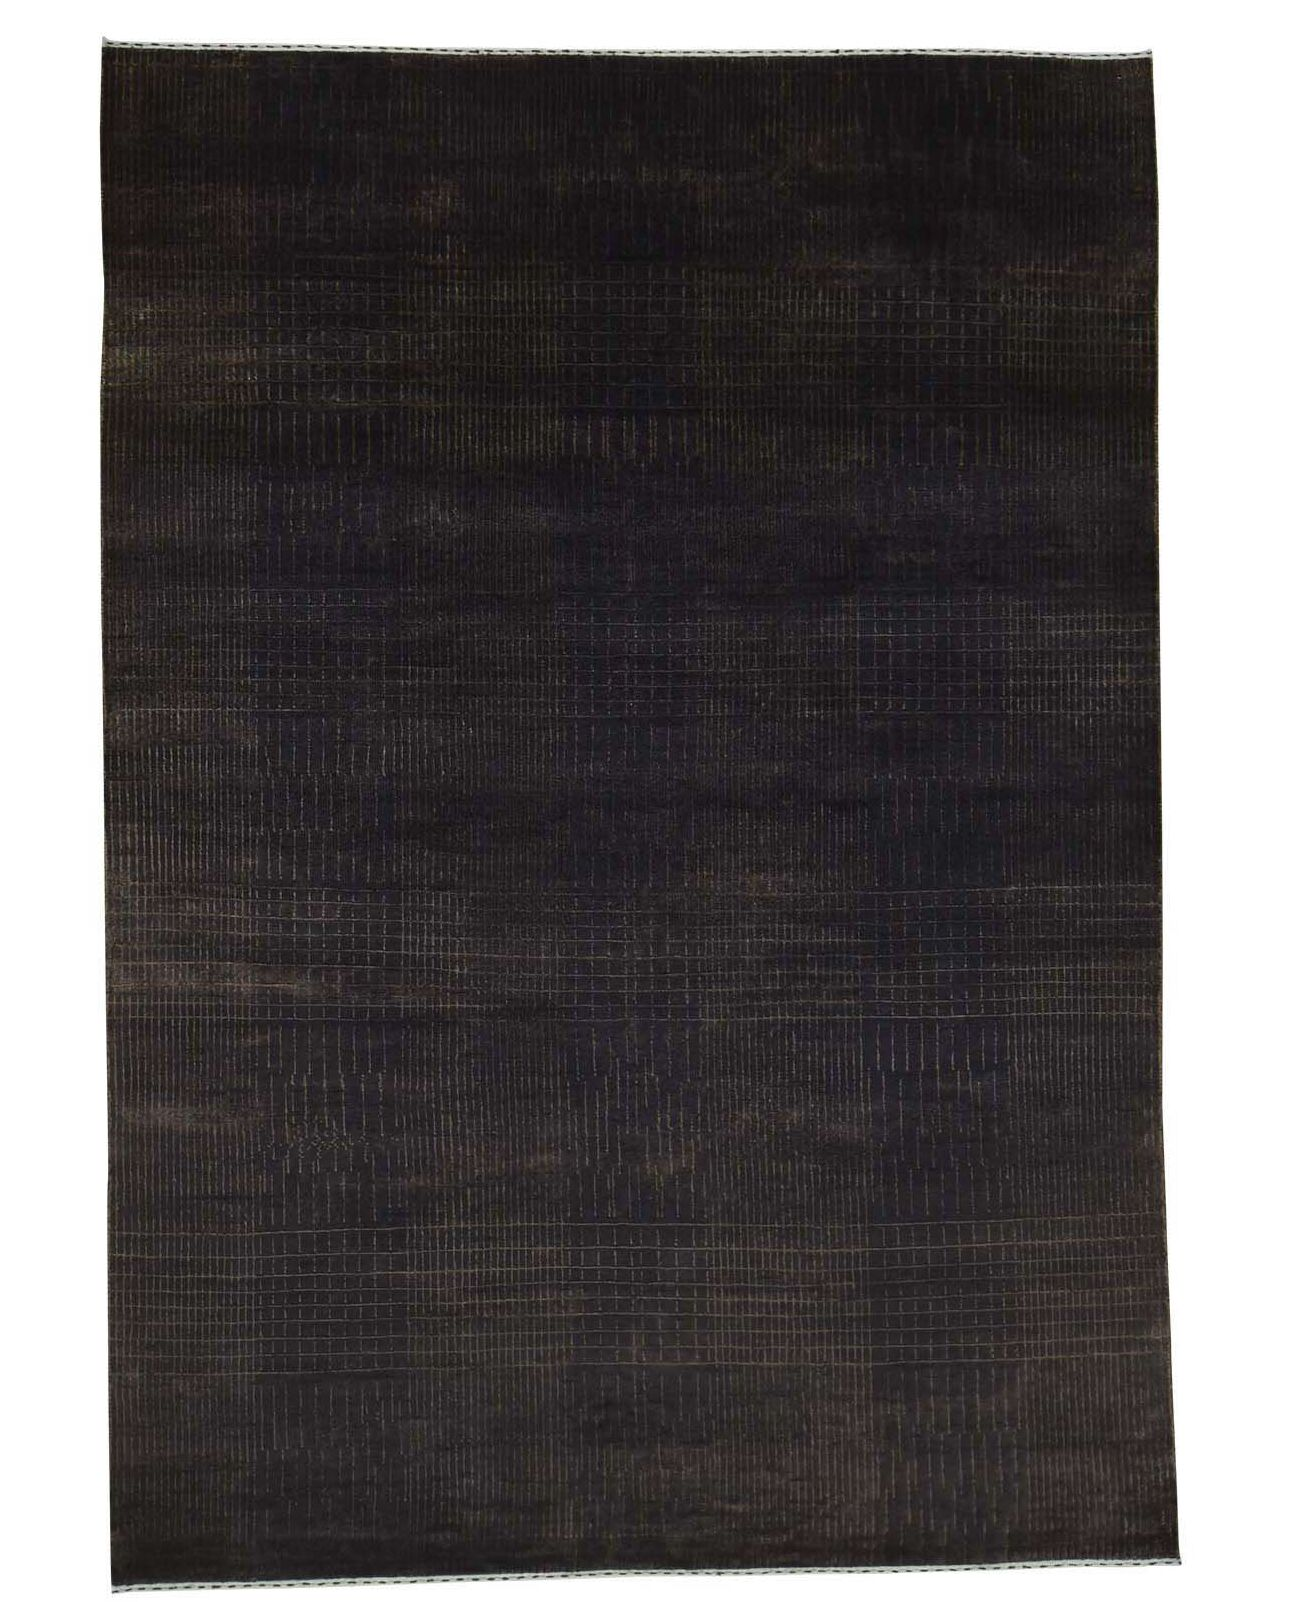 Nepali Hand-Knotted Chocolate Brown Area Rug